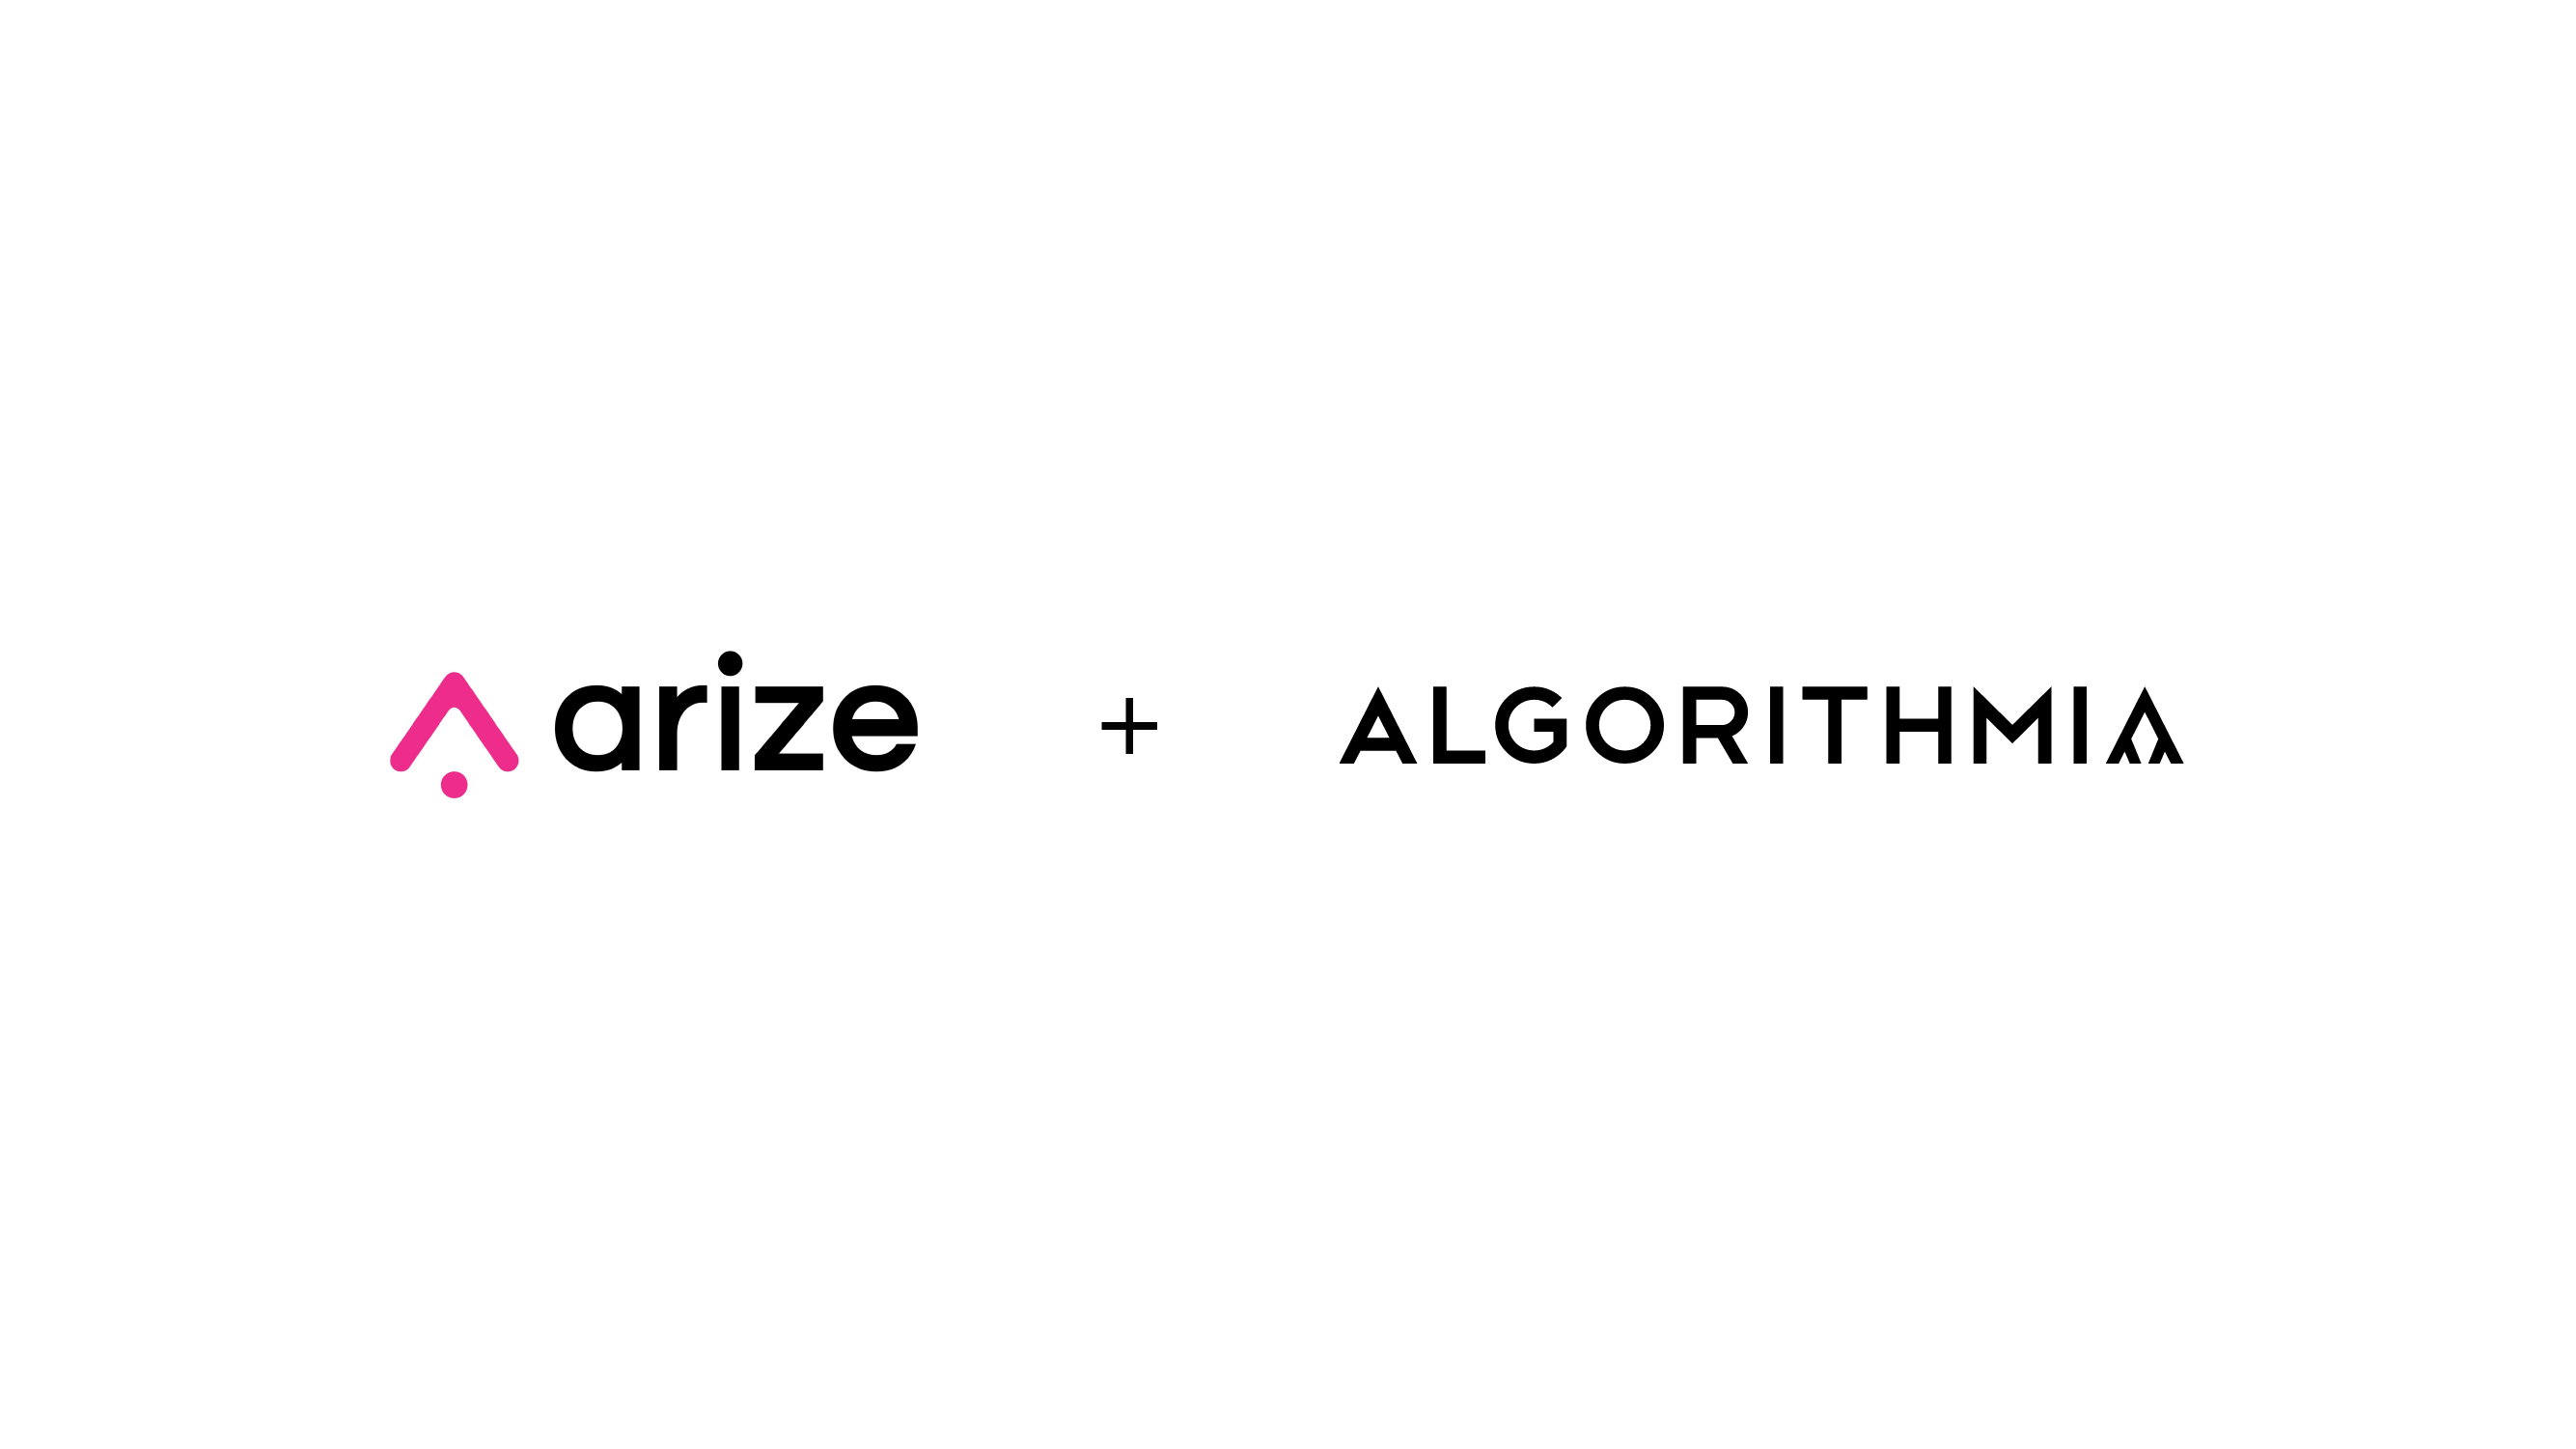 Arize AI Partners with Algorithmia to Enable Better MLOps and Observability for Enterprises